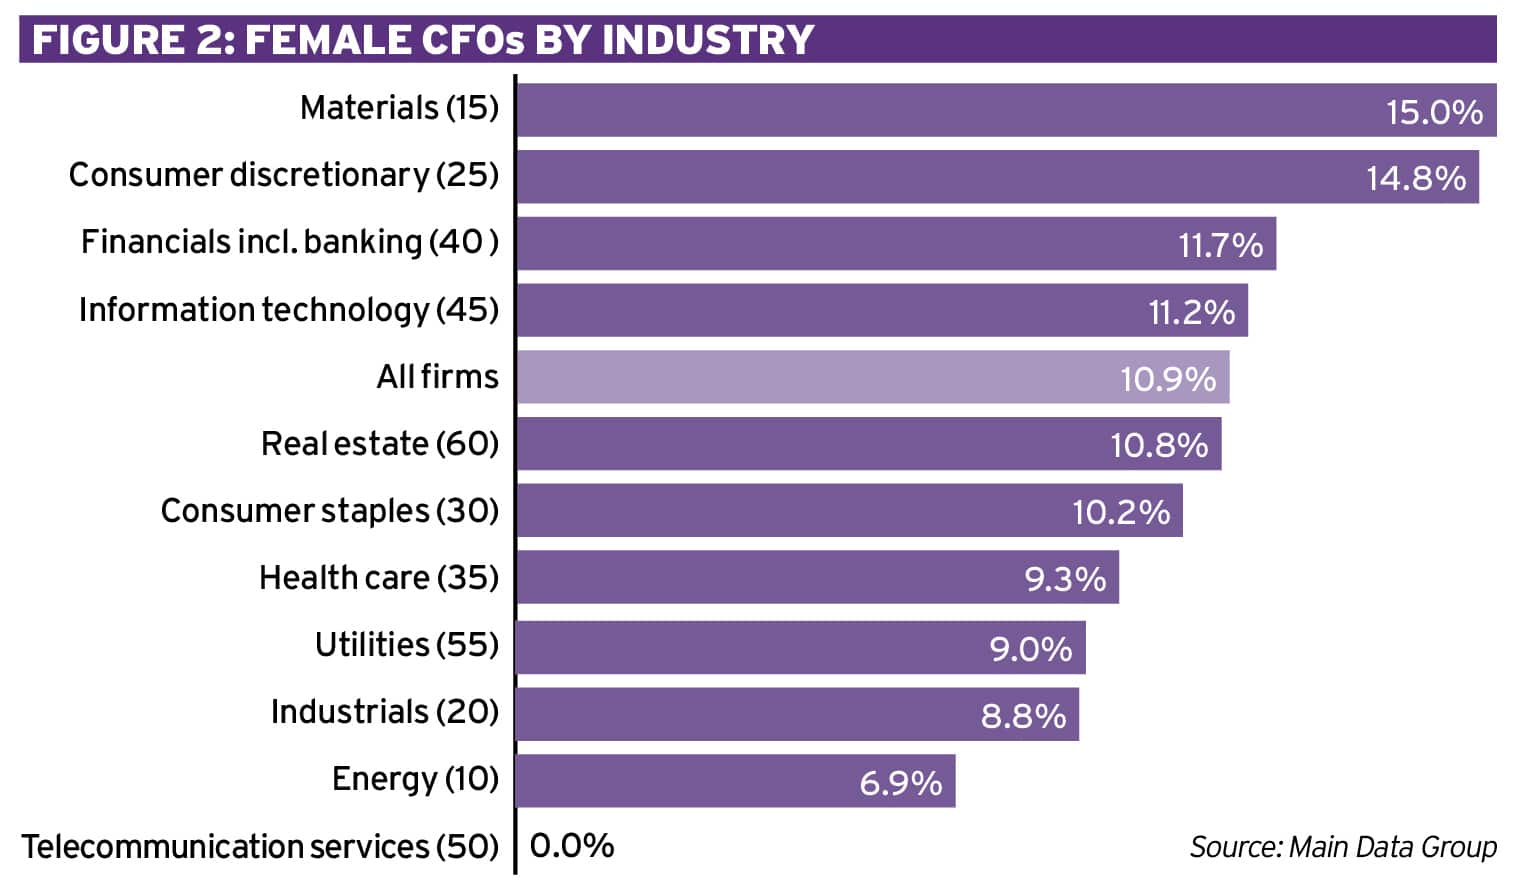 Pay disparity: How do female CFOs fare? Ethical Boardroom